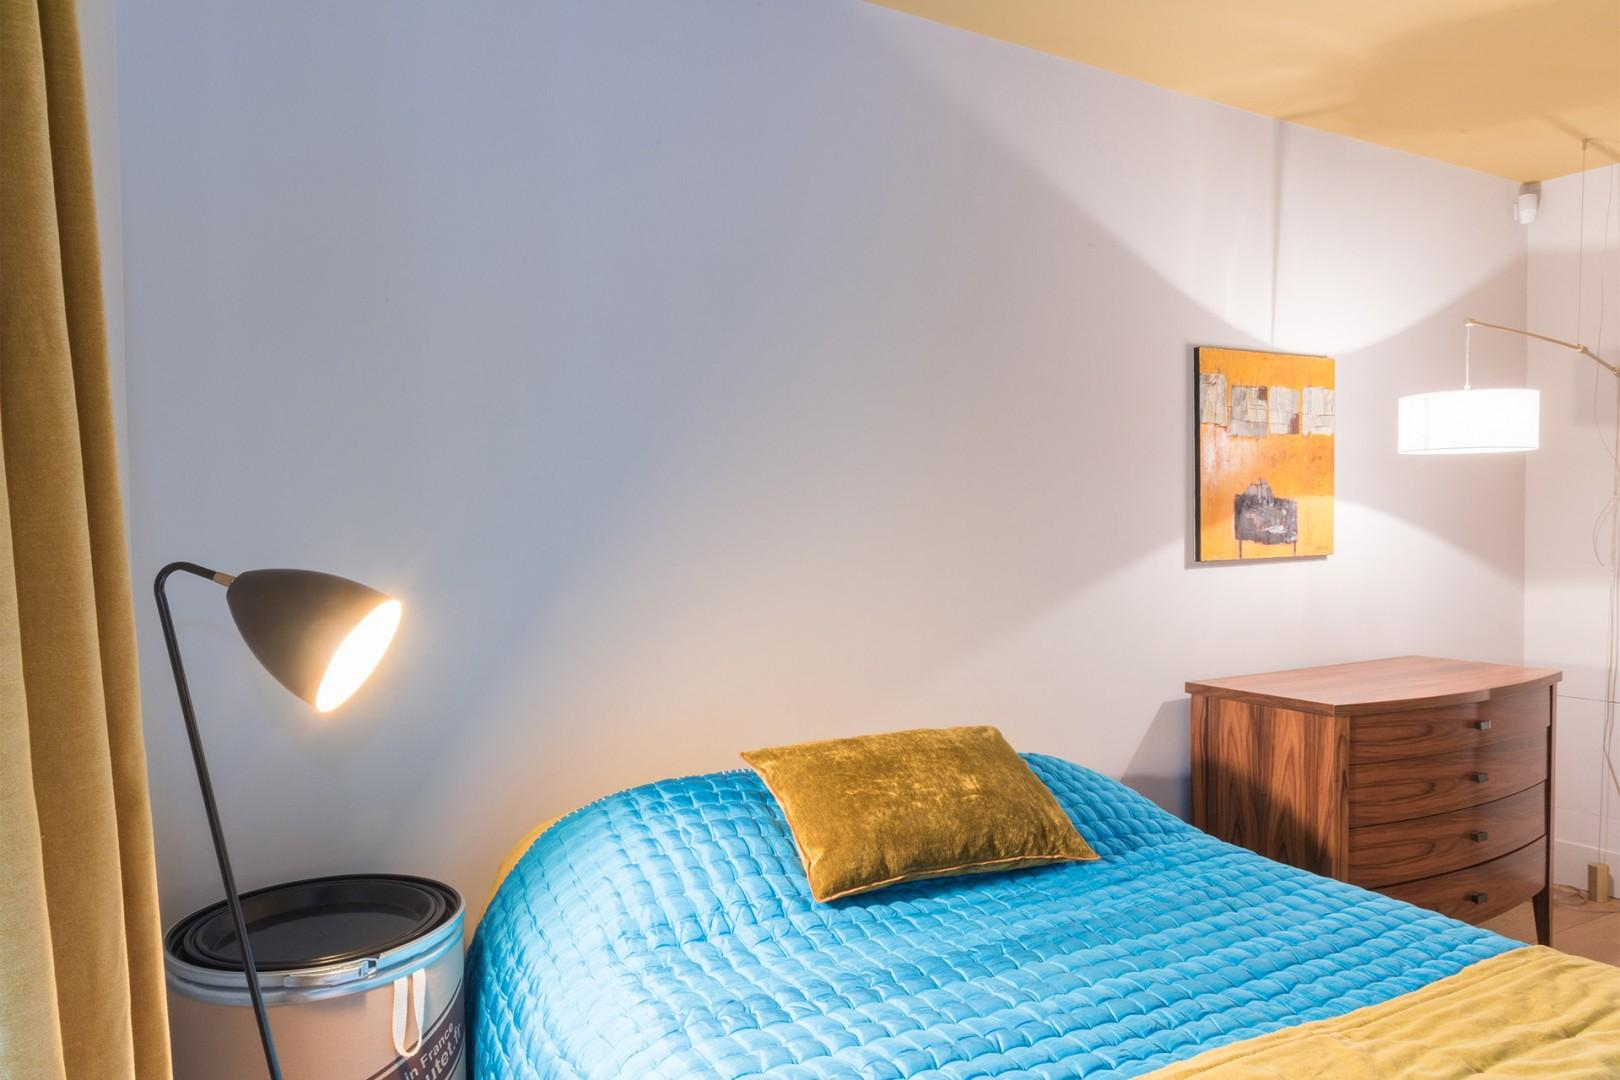 Bright contrasting colors in bedroom 3